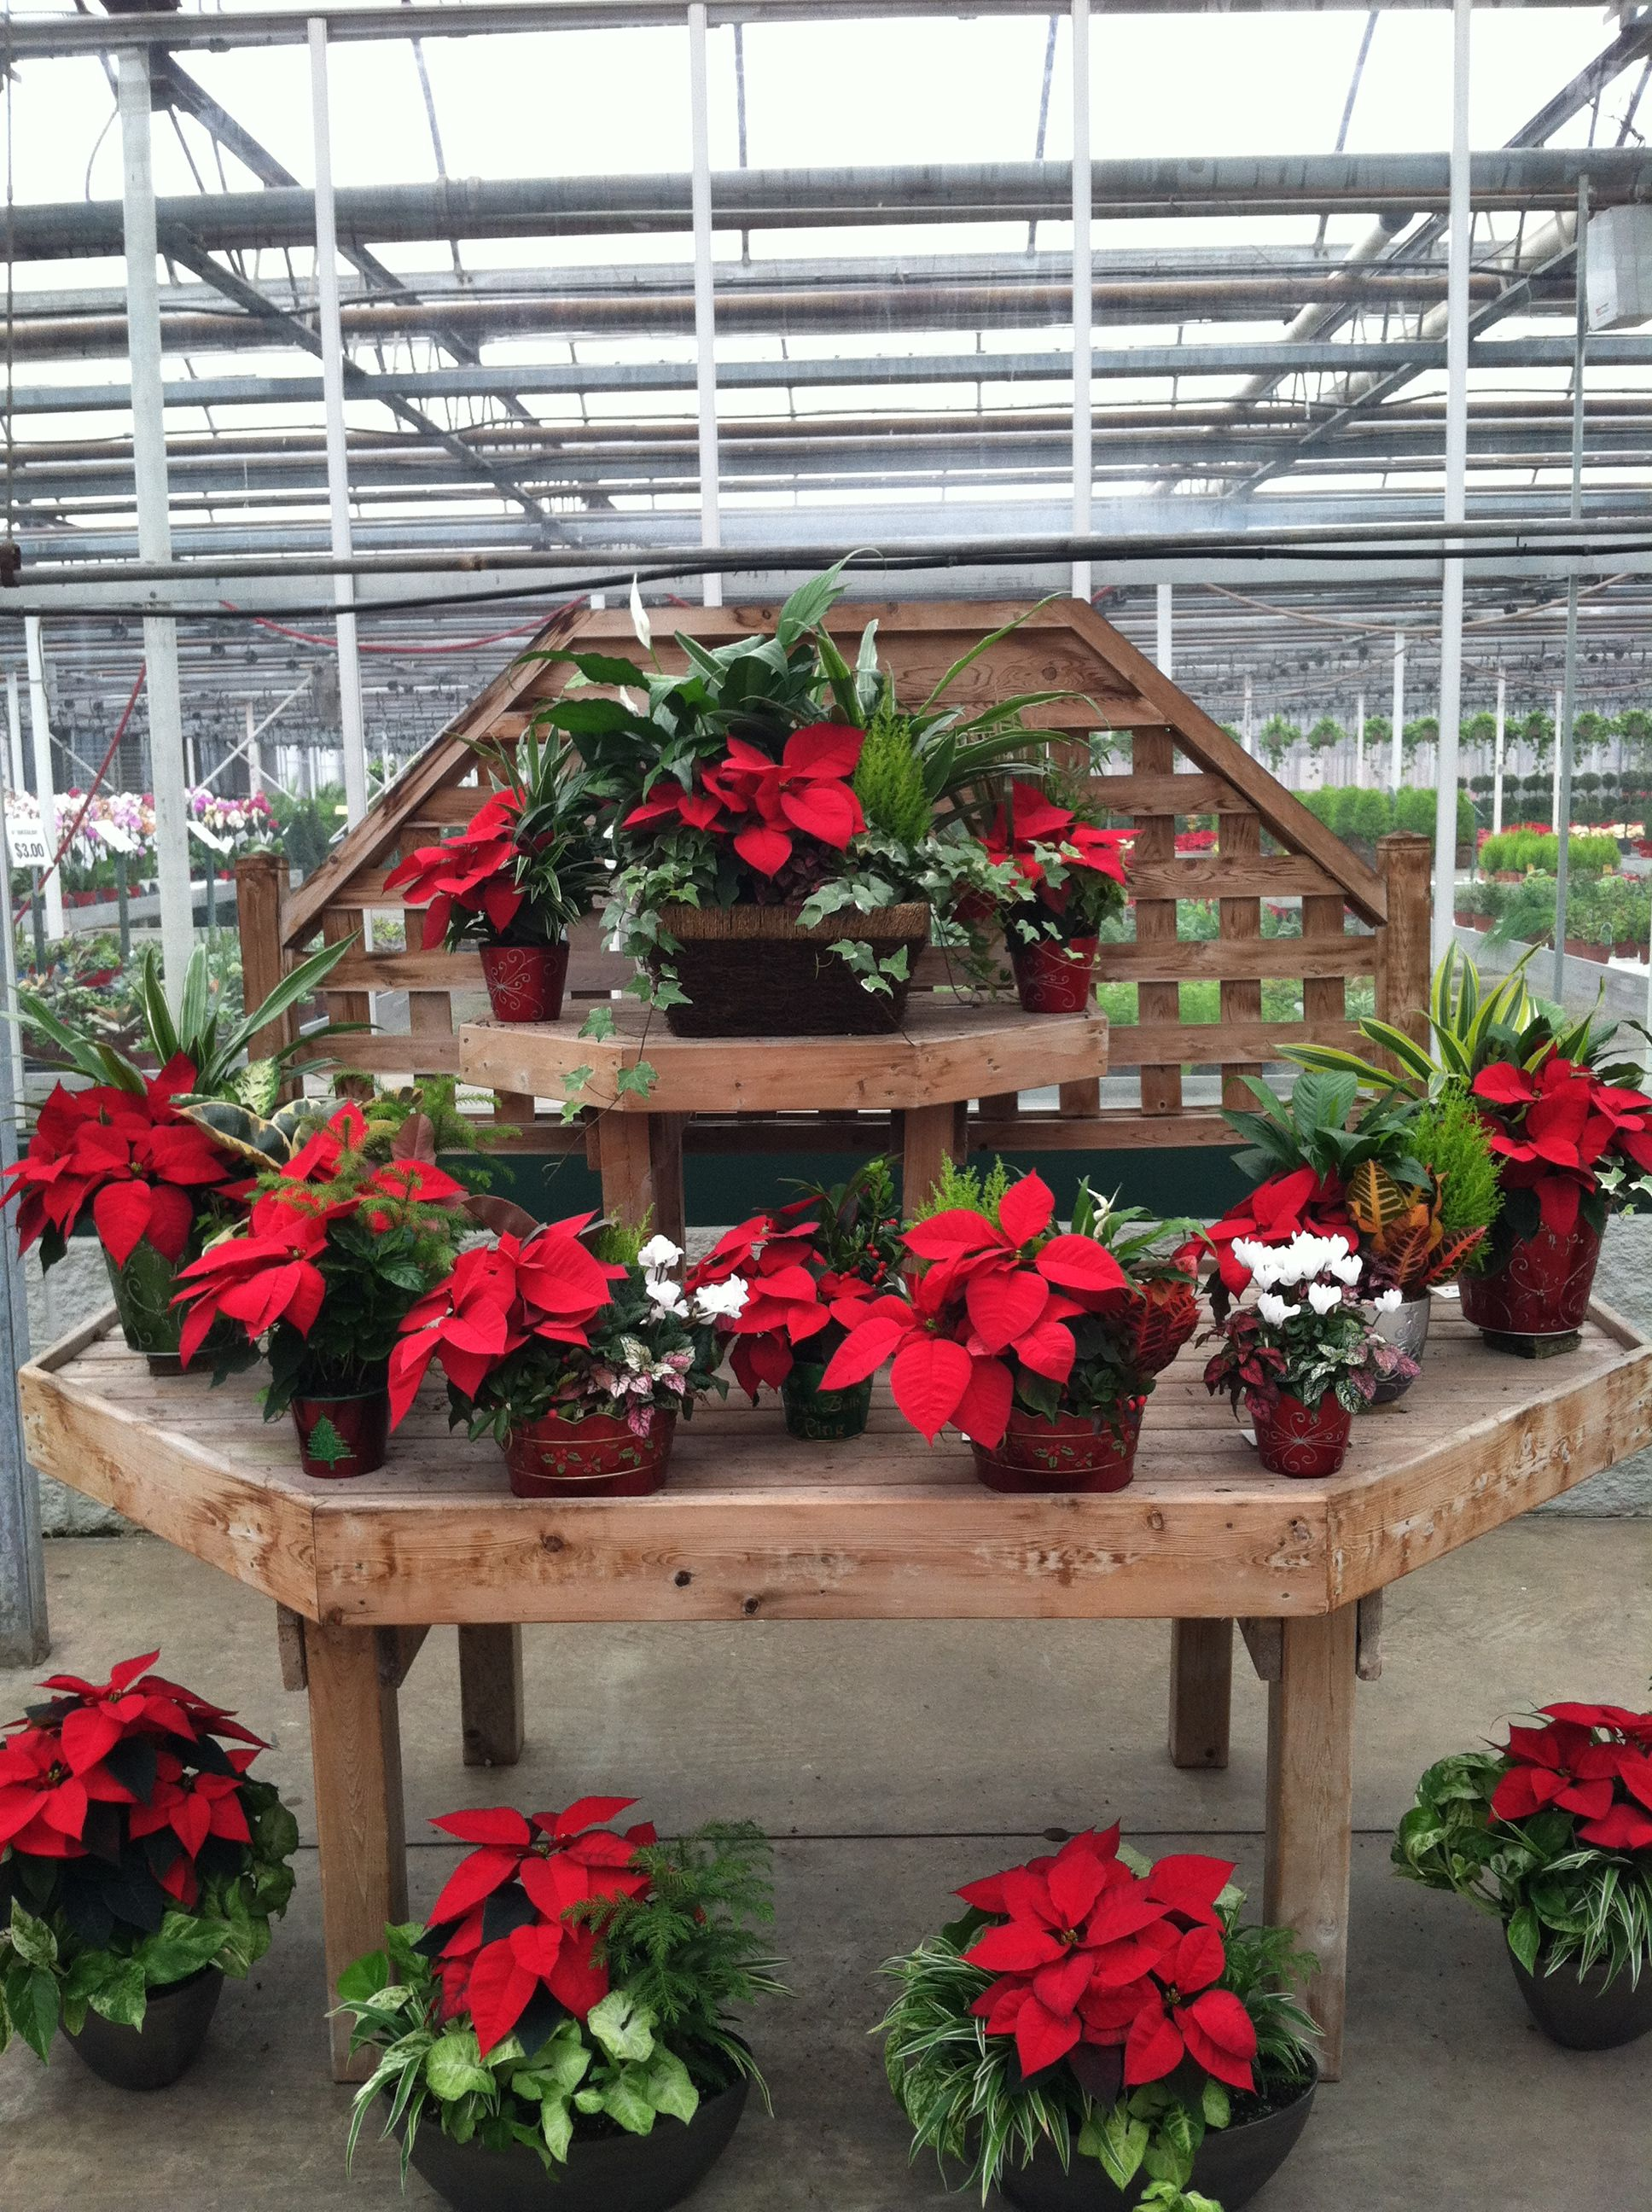 Full picture of Poinsettia combos Garden center displays